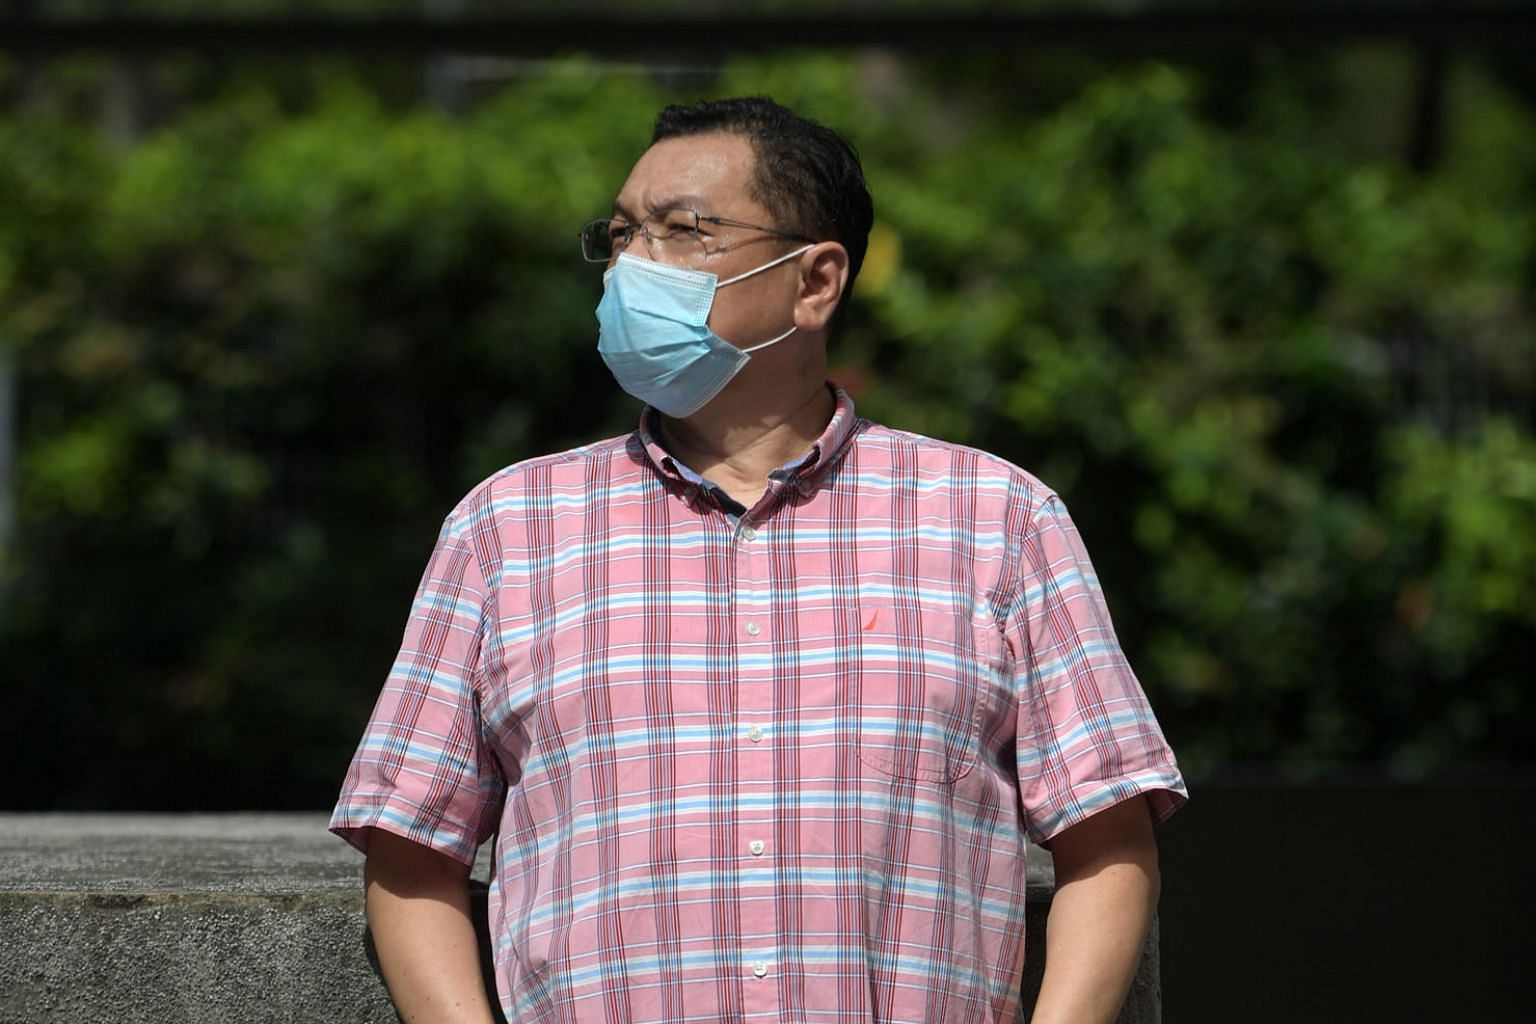 Mr Ben Ng hallucinated continuously and lost track of time during his 13 days in the intensive care unit. After his discharge, he had several flashbacks and saw himself lying in the ICU bed with people asking questions.